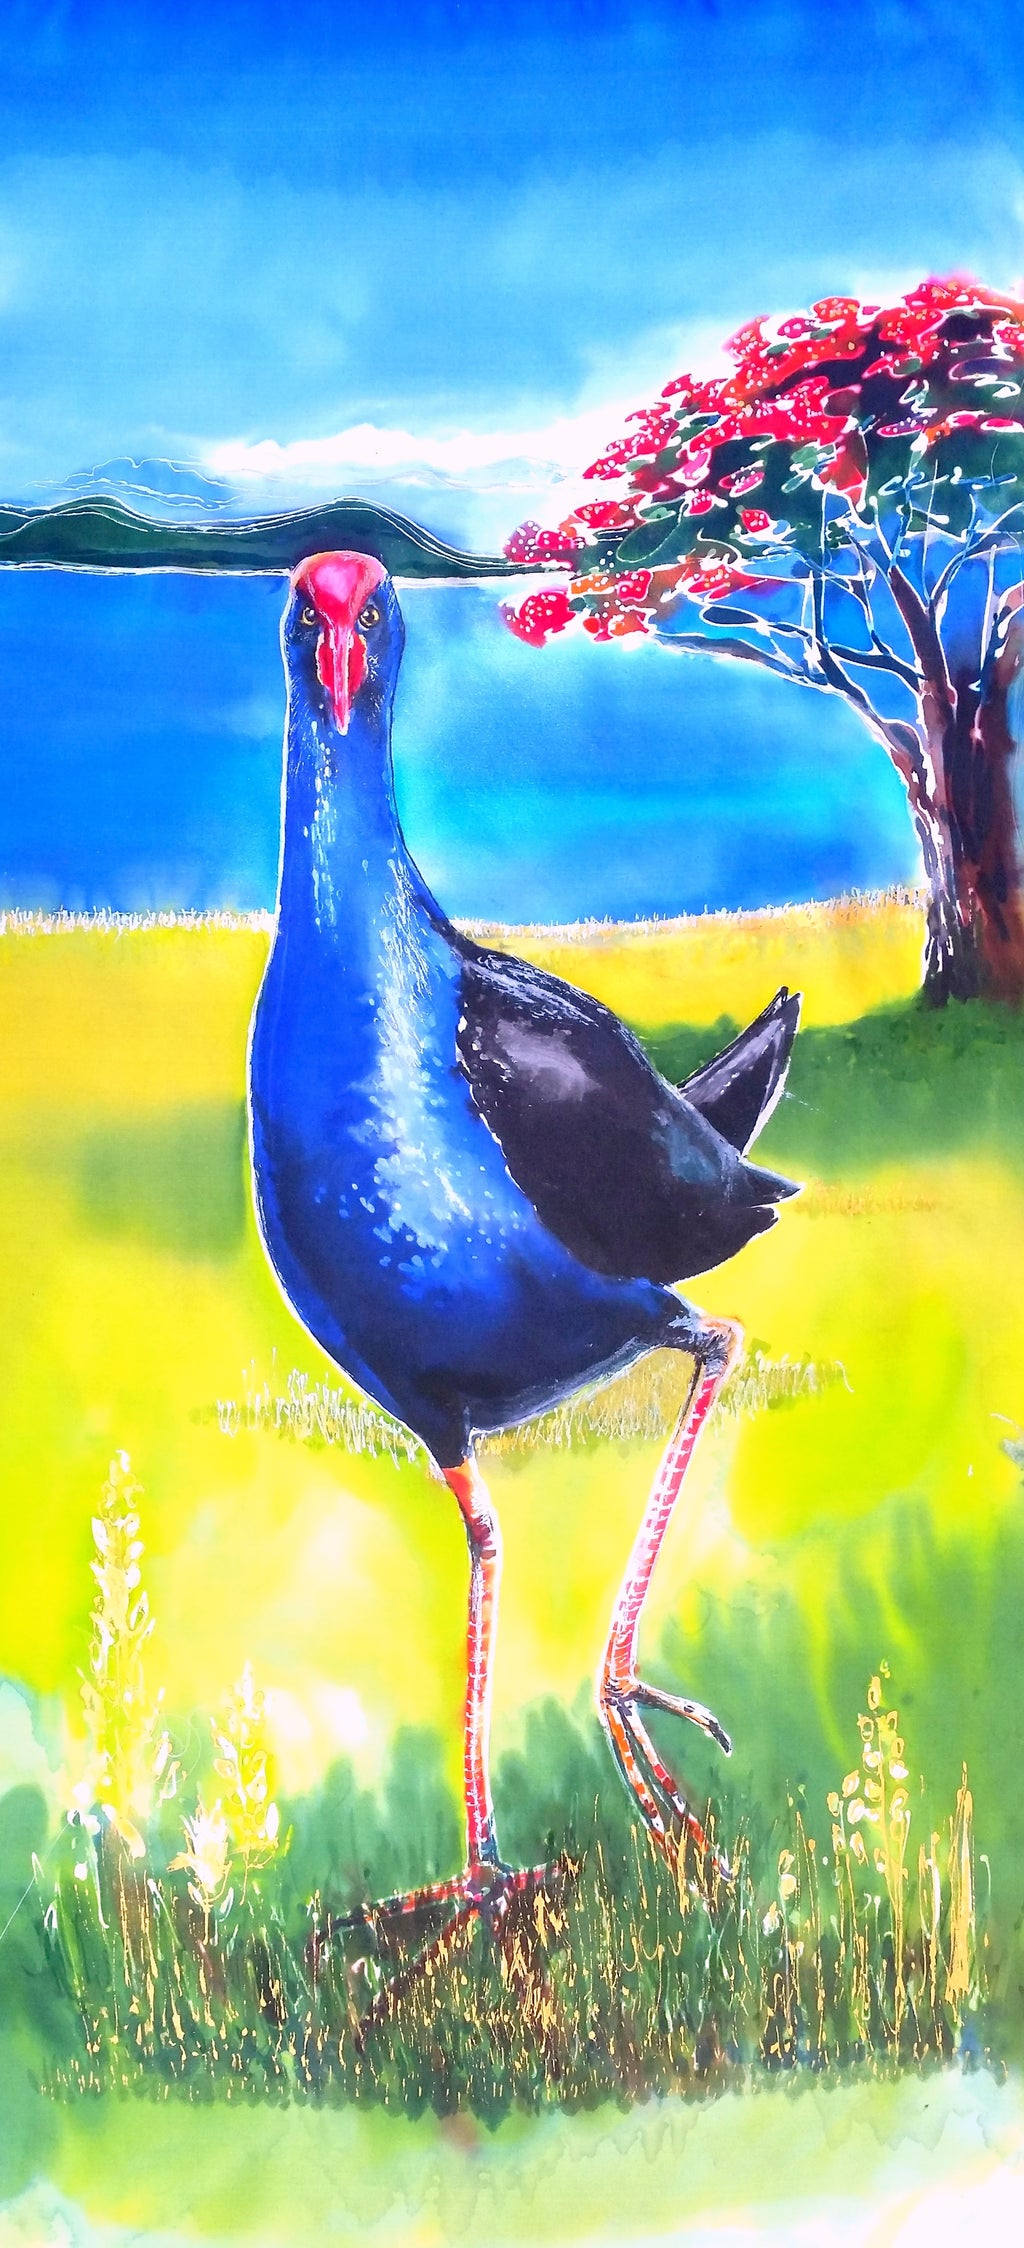 Original Silk Paintings - Pukeko / Pohutukawa